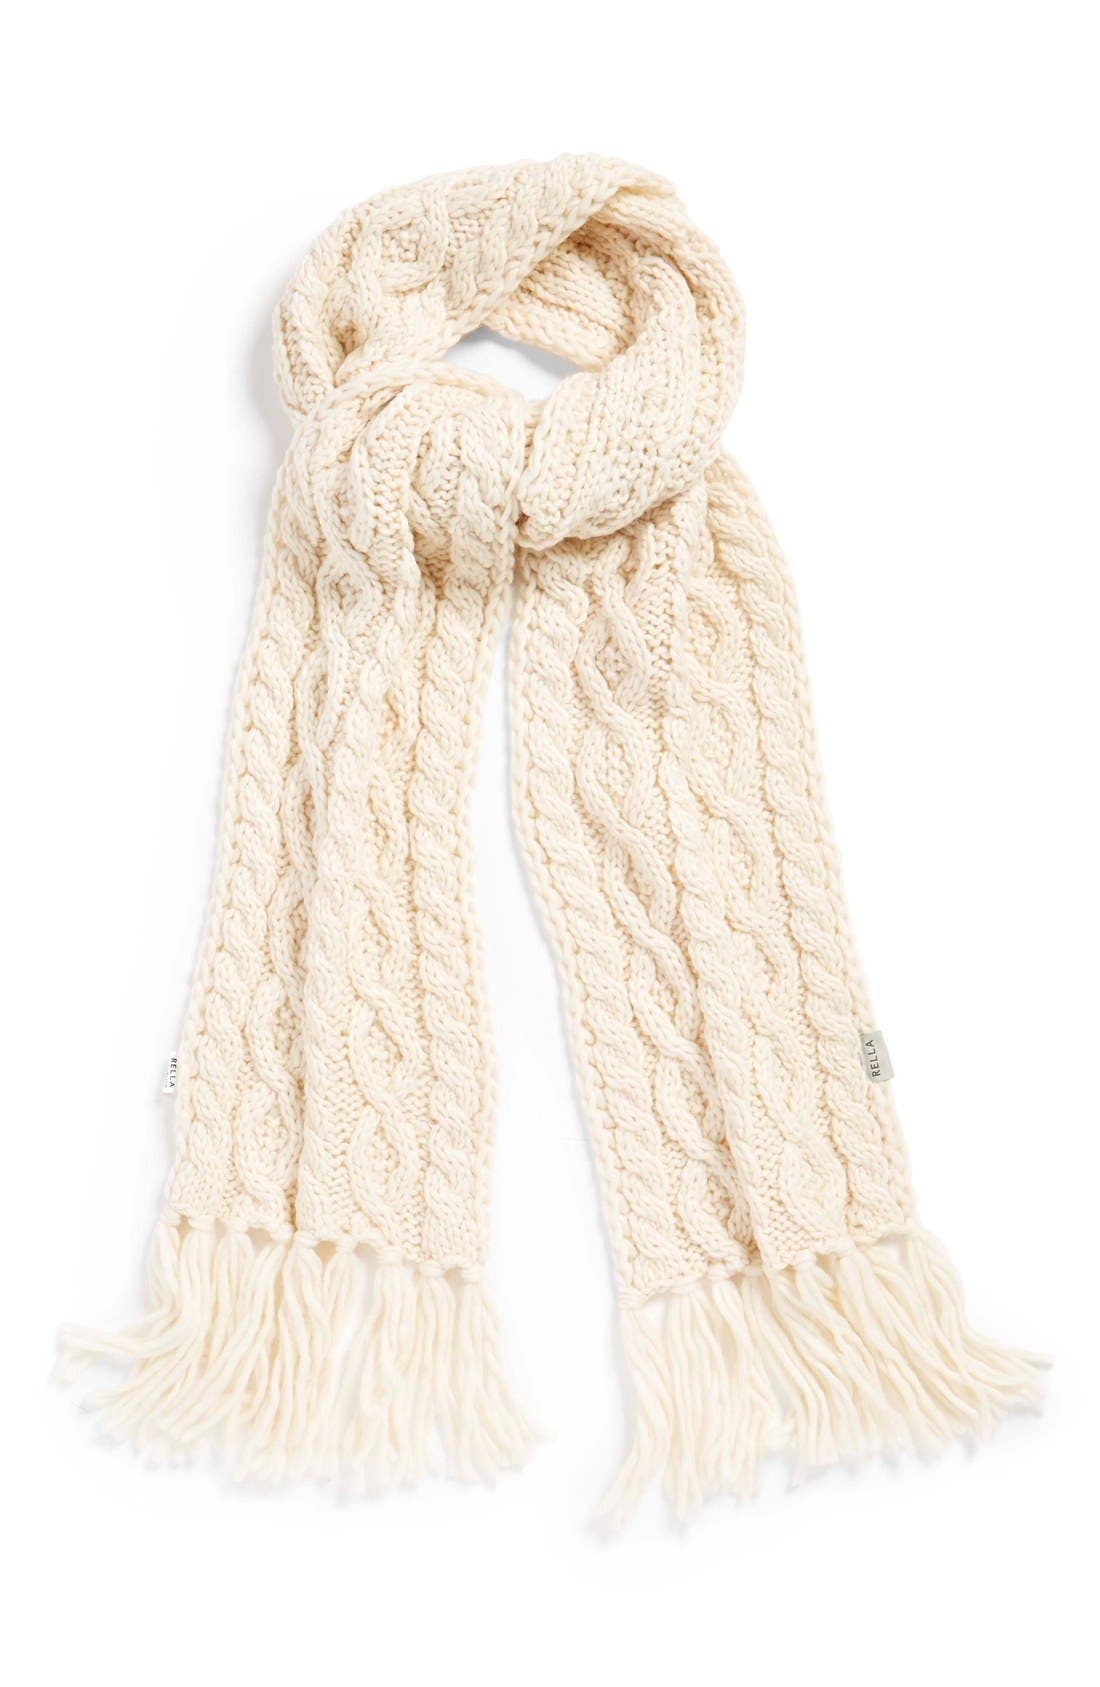 Main Image - Rella 'Betto' Cable Knit Merino Wool Blend Scarf